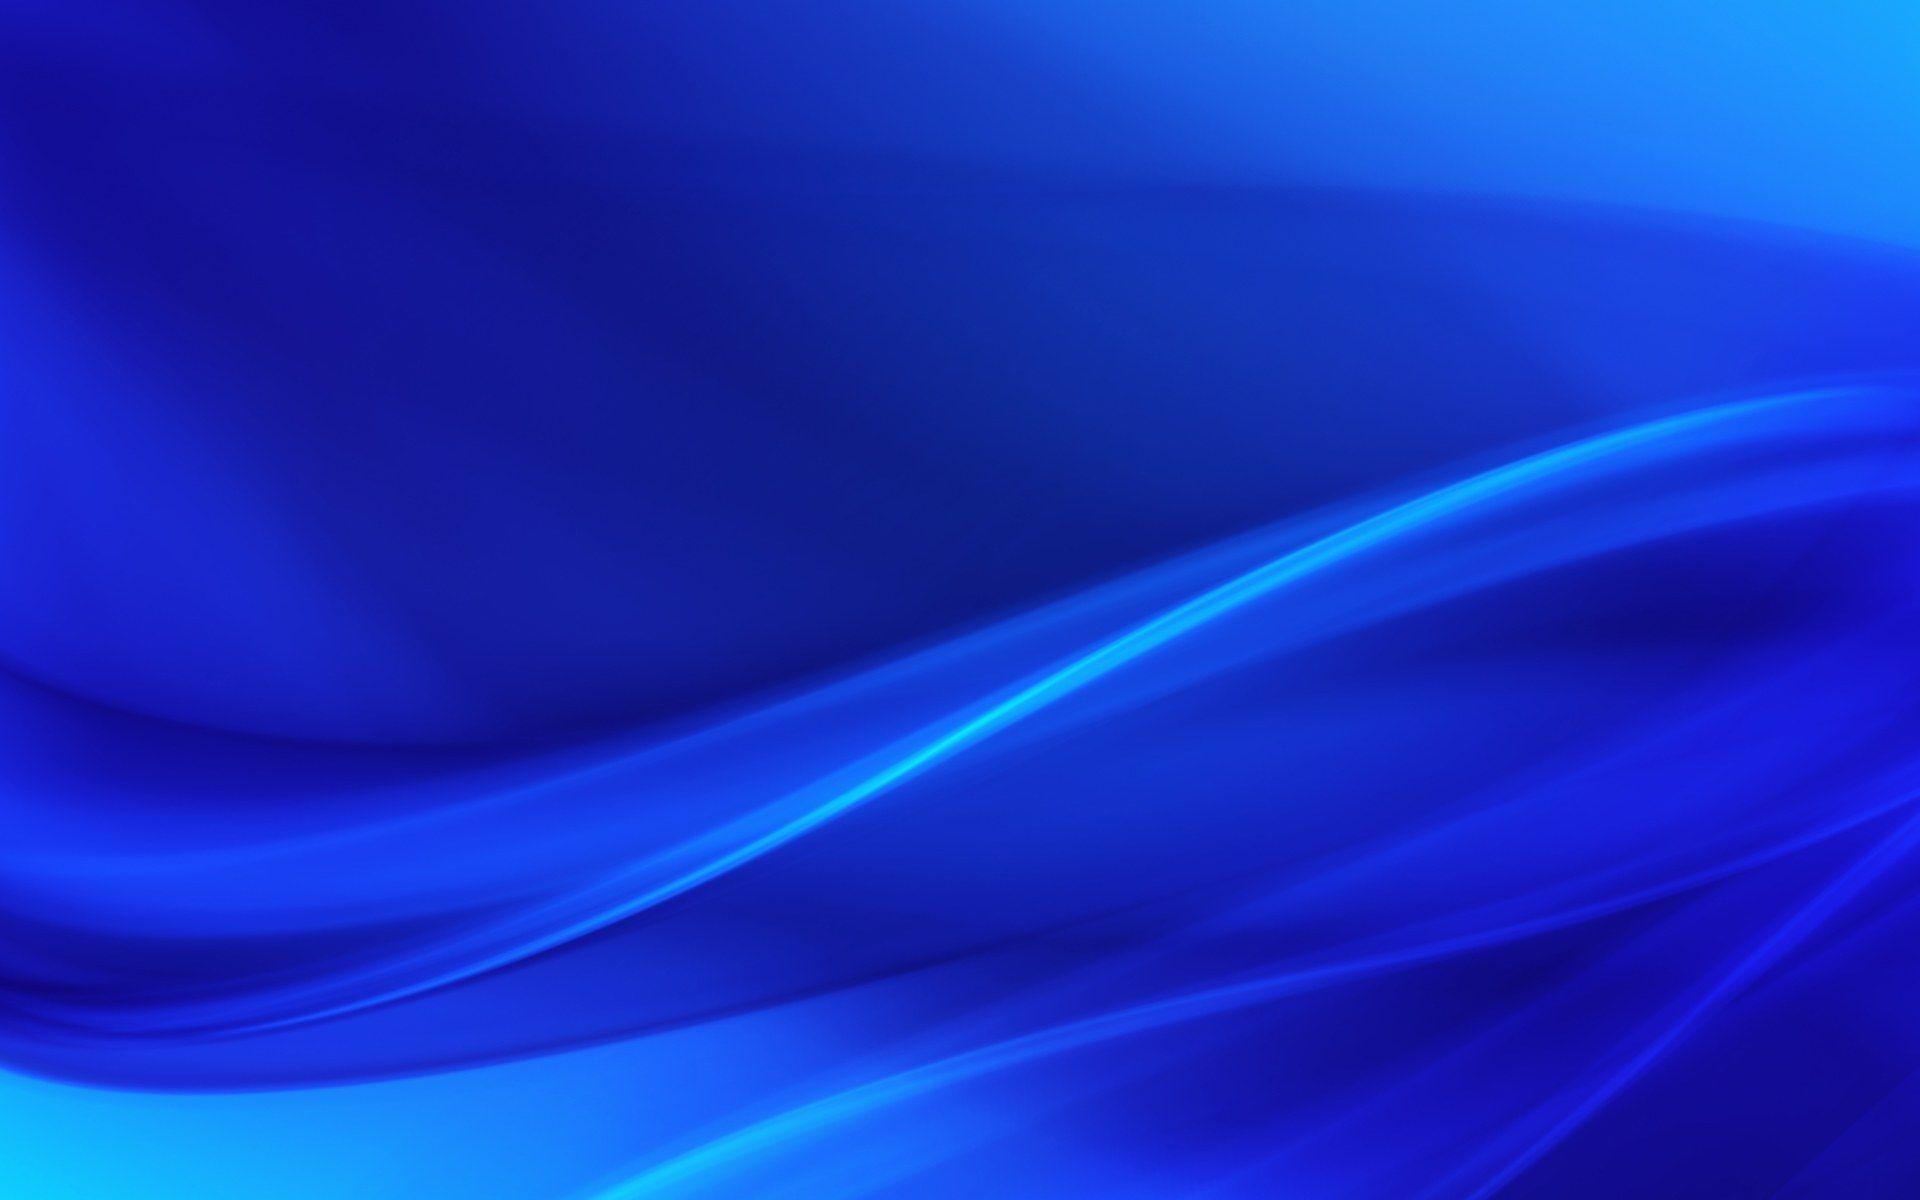 Blue Backgrounds Wallpapers 1920x1200